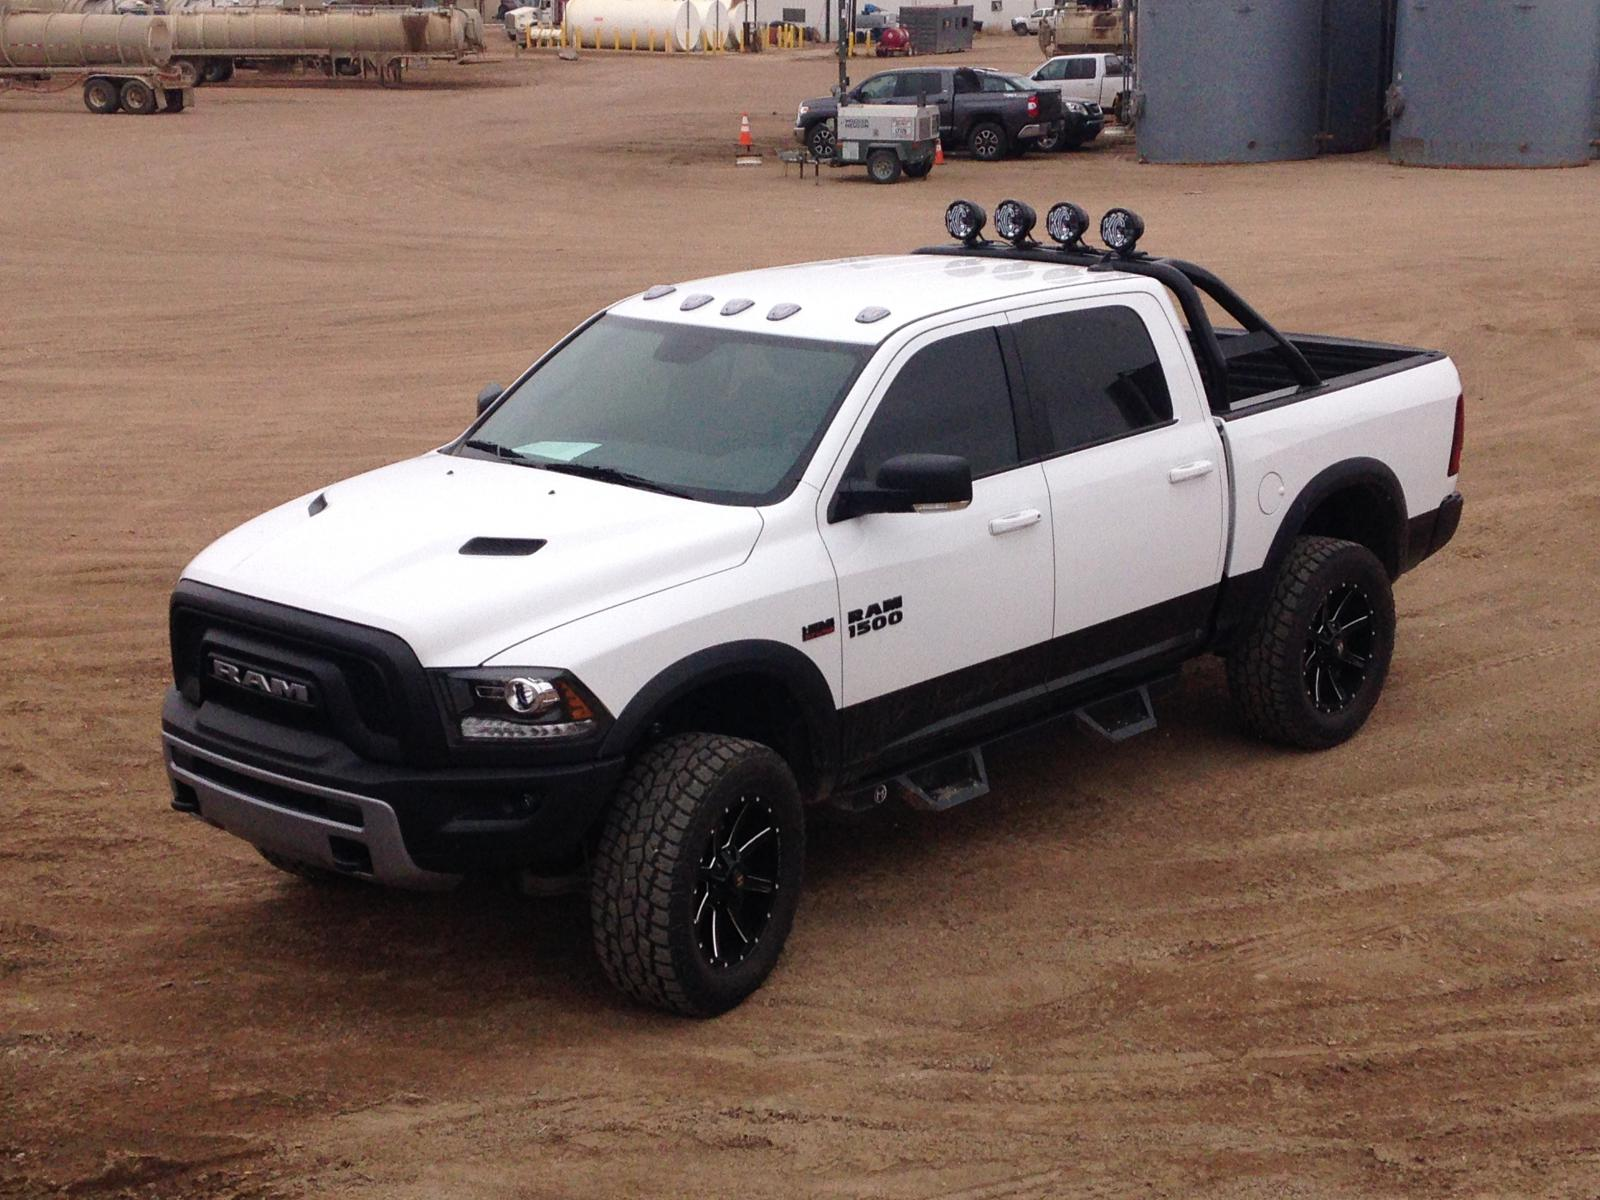 Ram Rebel Modifications and Accessories - Page 4 - Ram Rebel Forum